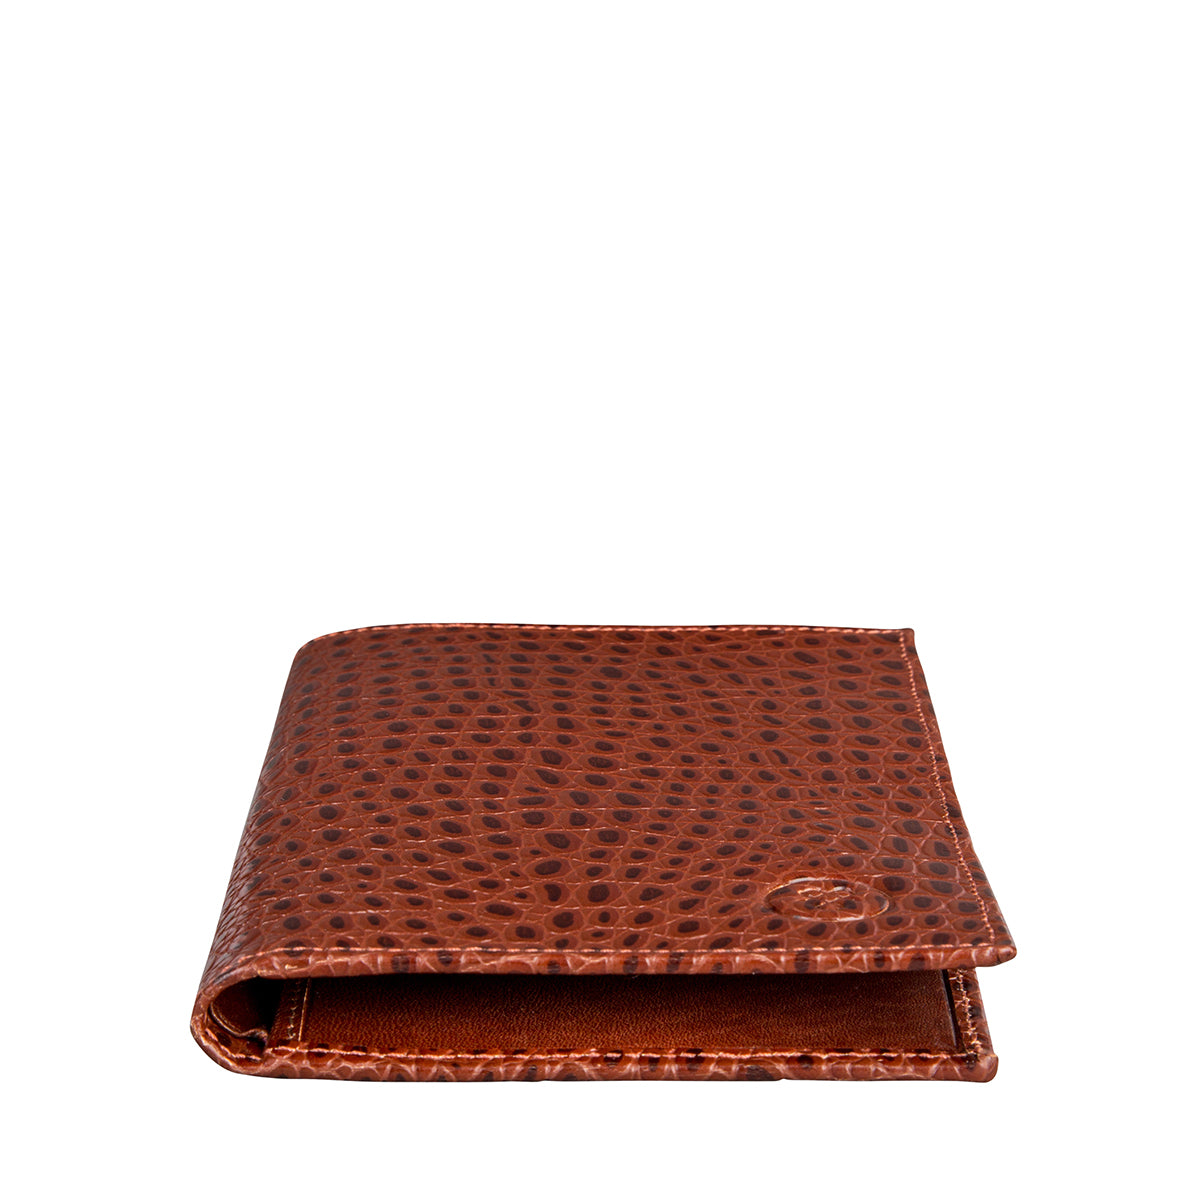 Image 2 of the 'Pianillo' Mock Croc Chestnut Veg-Tanned Leather Breast Wallet